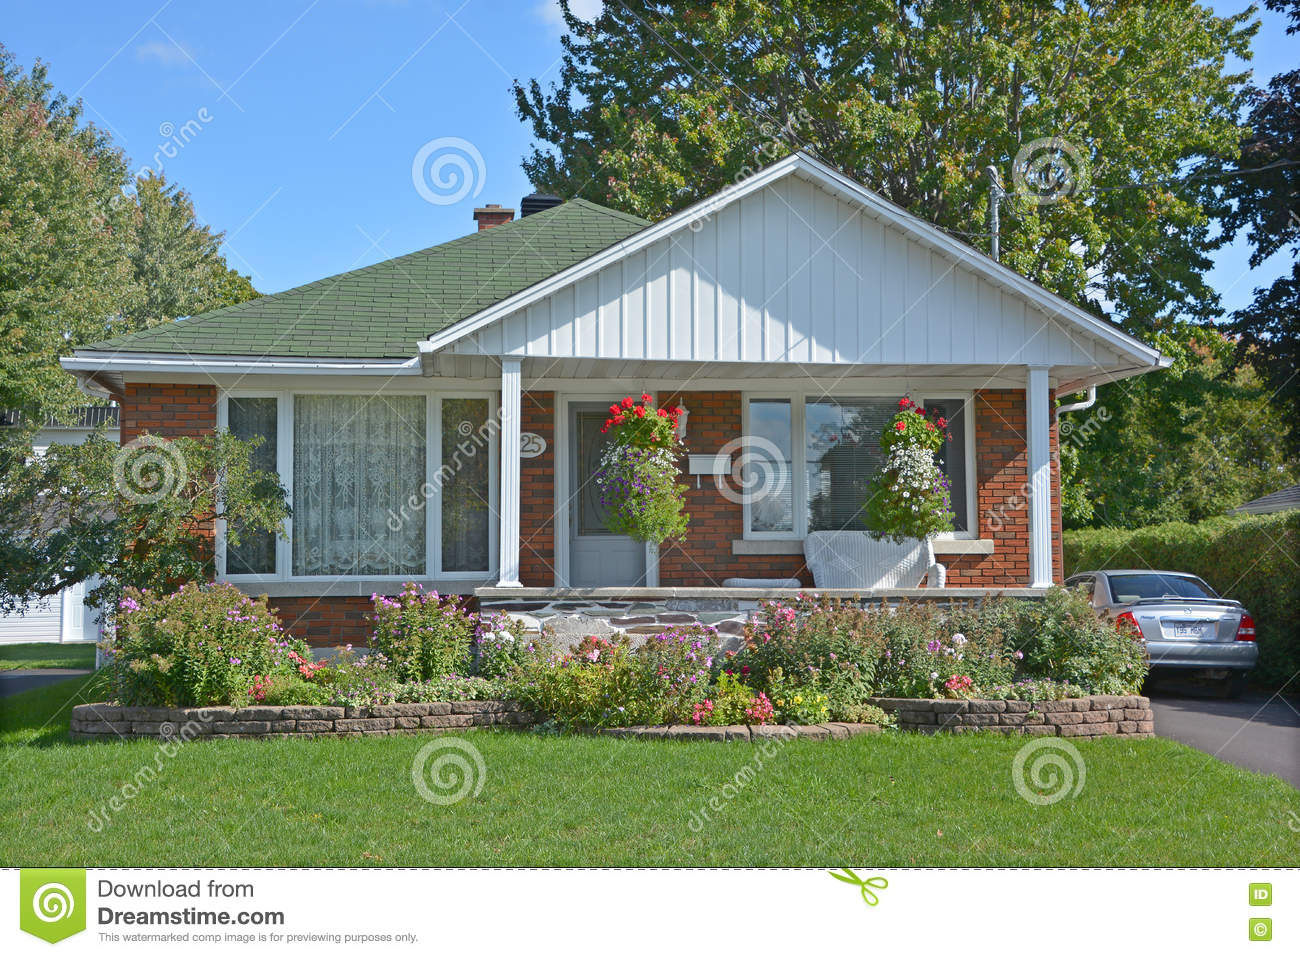 Typical 70s bungalow house editorial stock image image of for Canadian bungalow